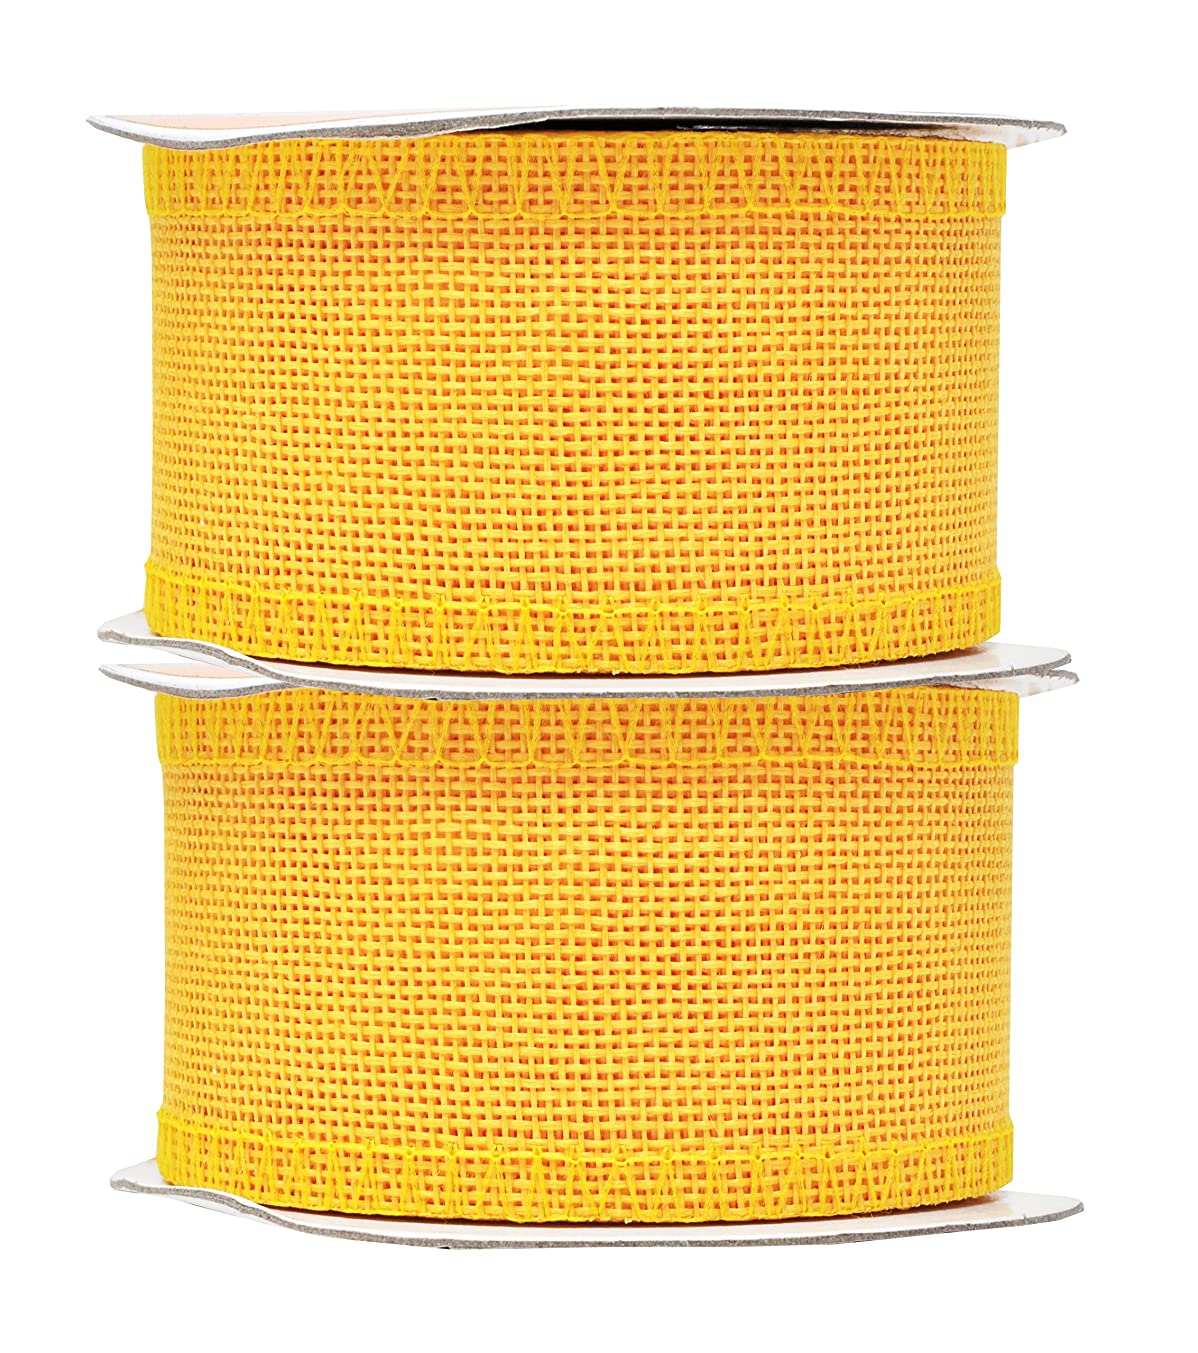 Mandala Crafts Burlap Ribbon, Jute Fabric Strip Spool for Rustic Ornament, Wreath Making, Holiday Decorating, Gift Wrapping (Yellow, 2 Inches)